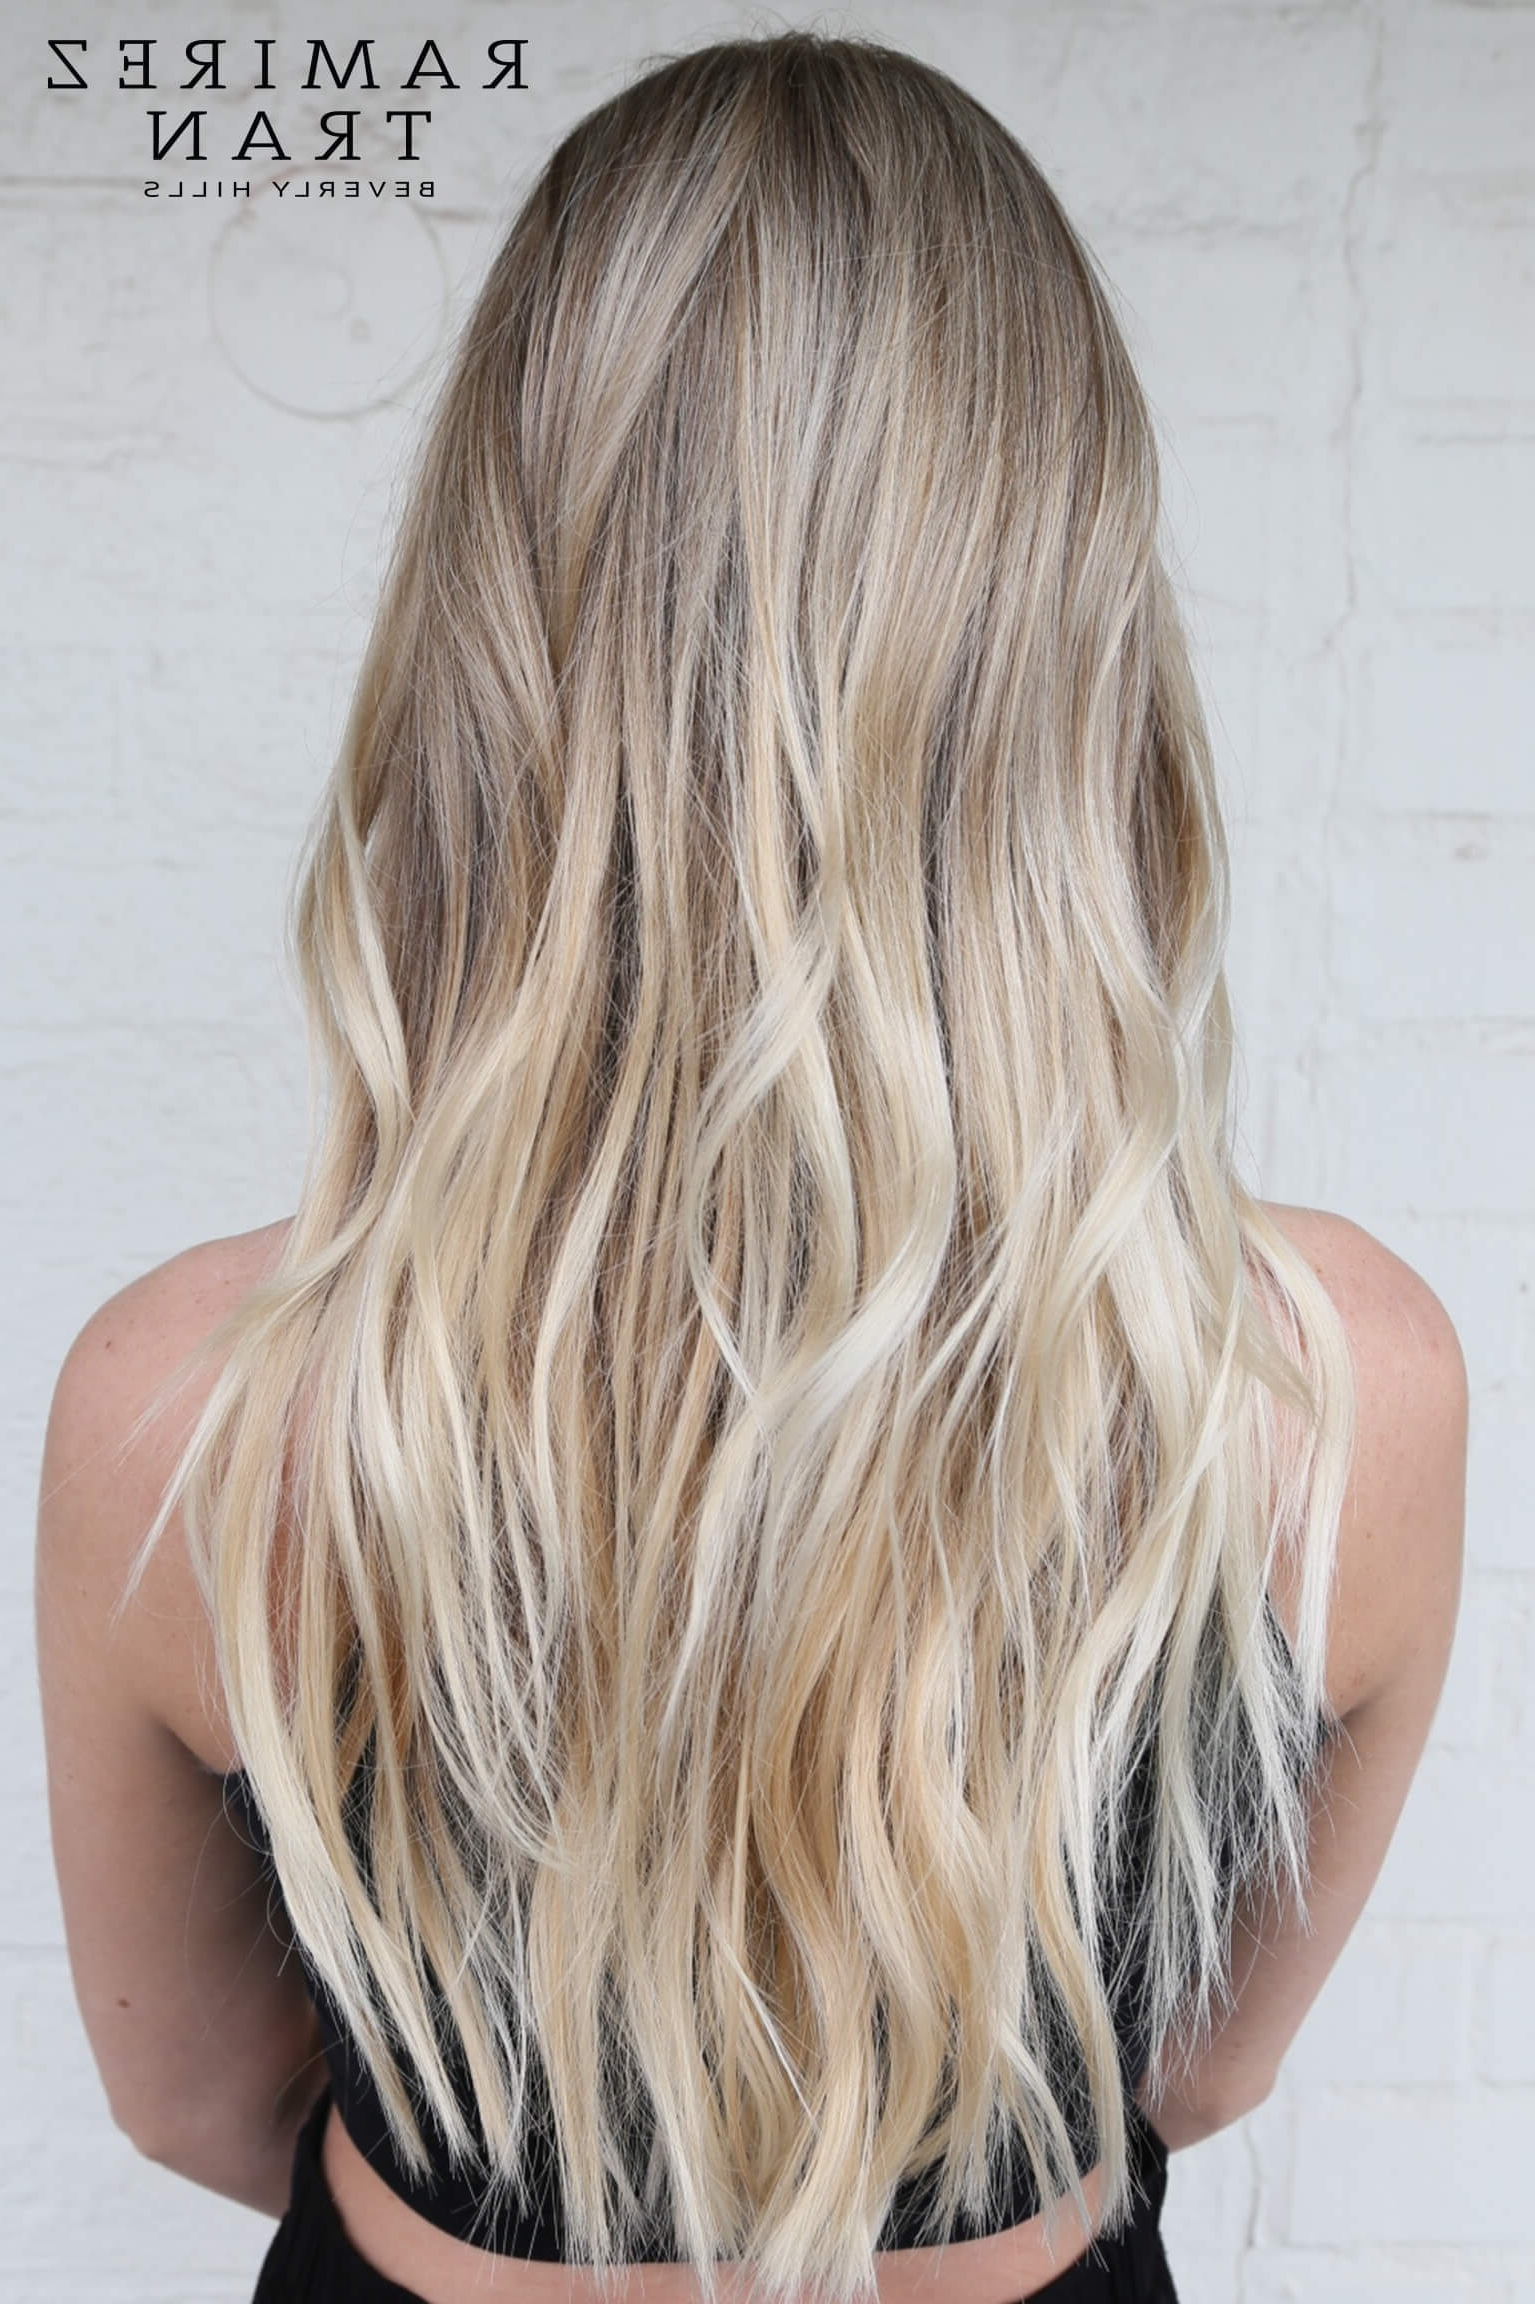 Most Recently Released Classic Blonde Balayage Hairstyles Regarding 50 Bombshell Blonde Balayage Hairstyles That Are Cute And Easy For (View 15 of 20)